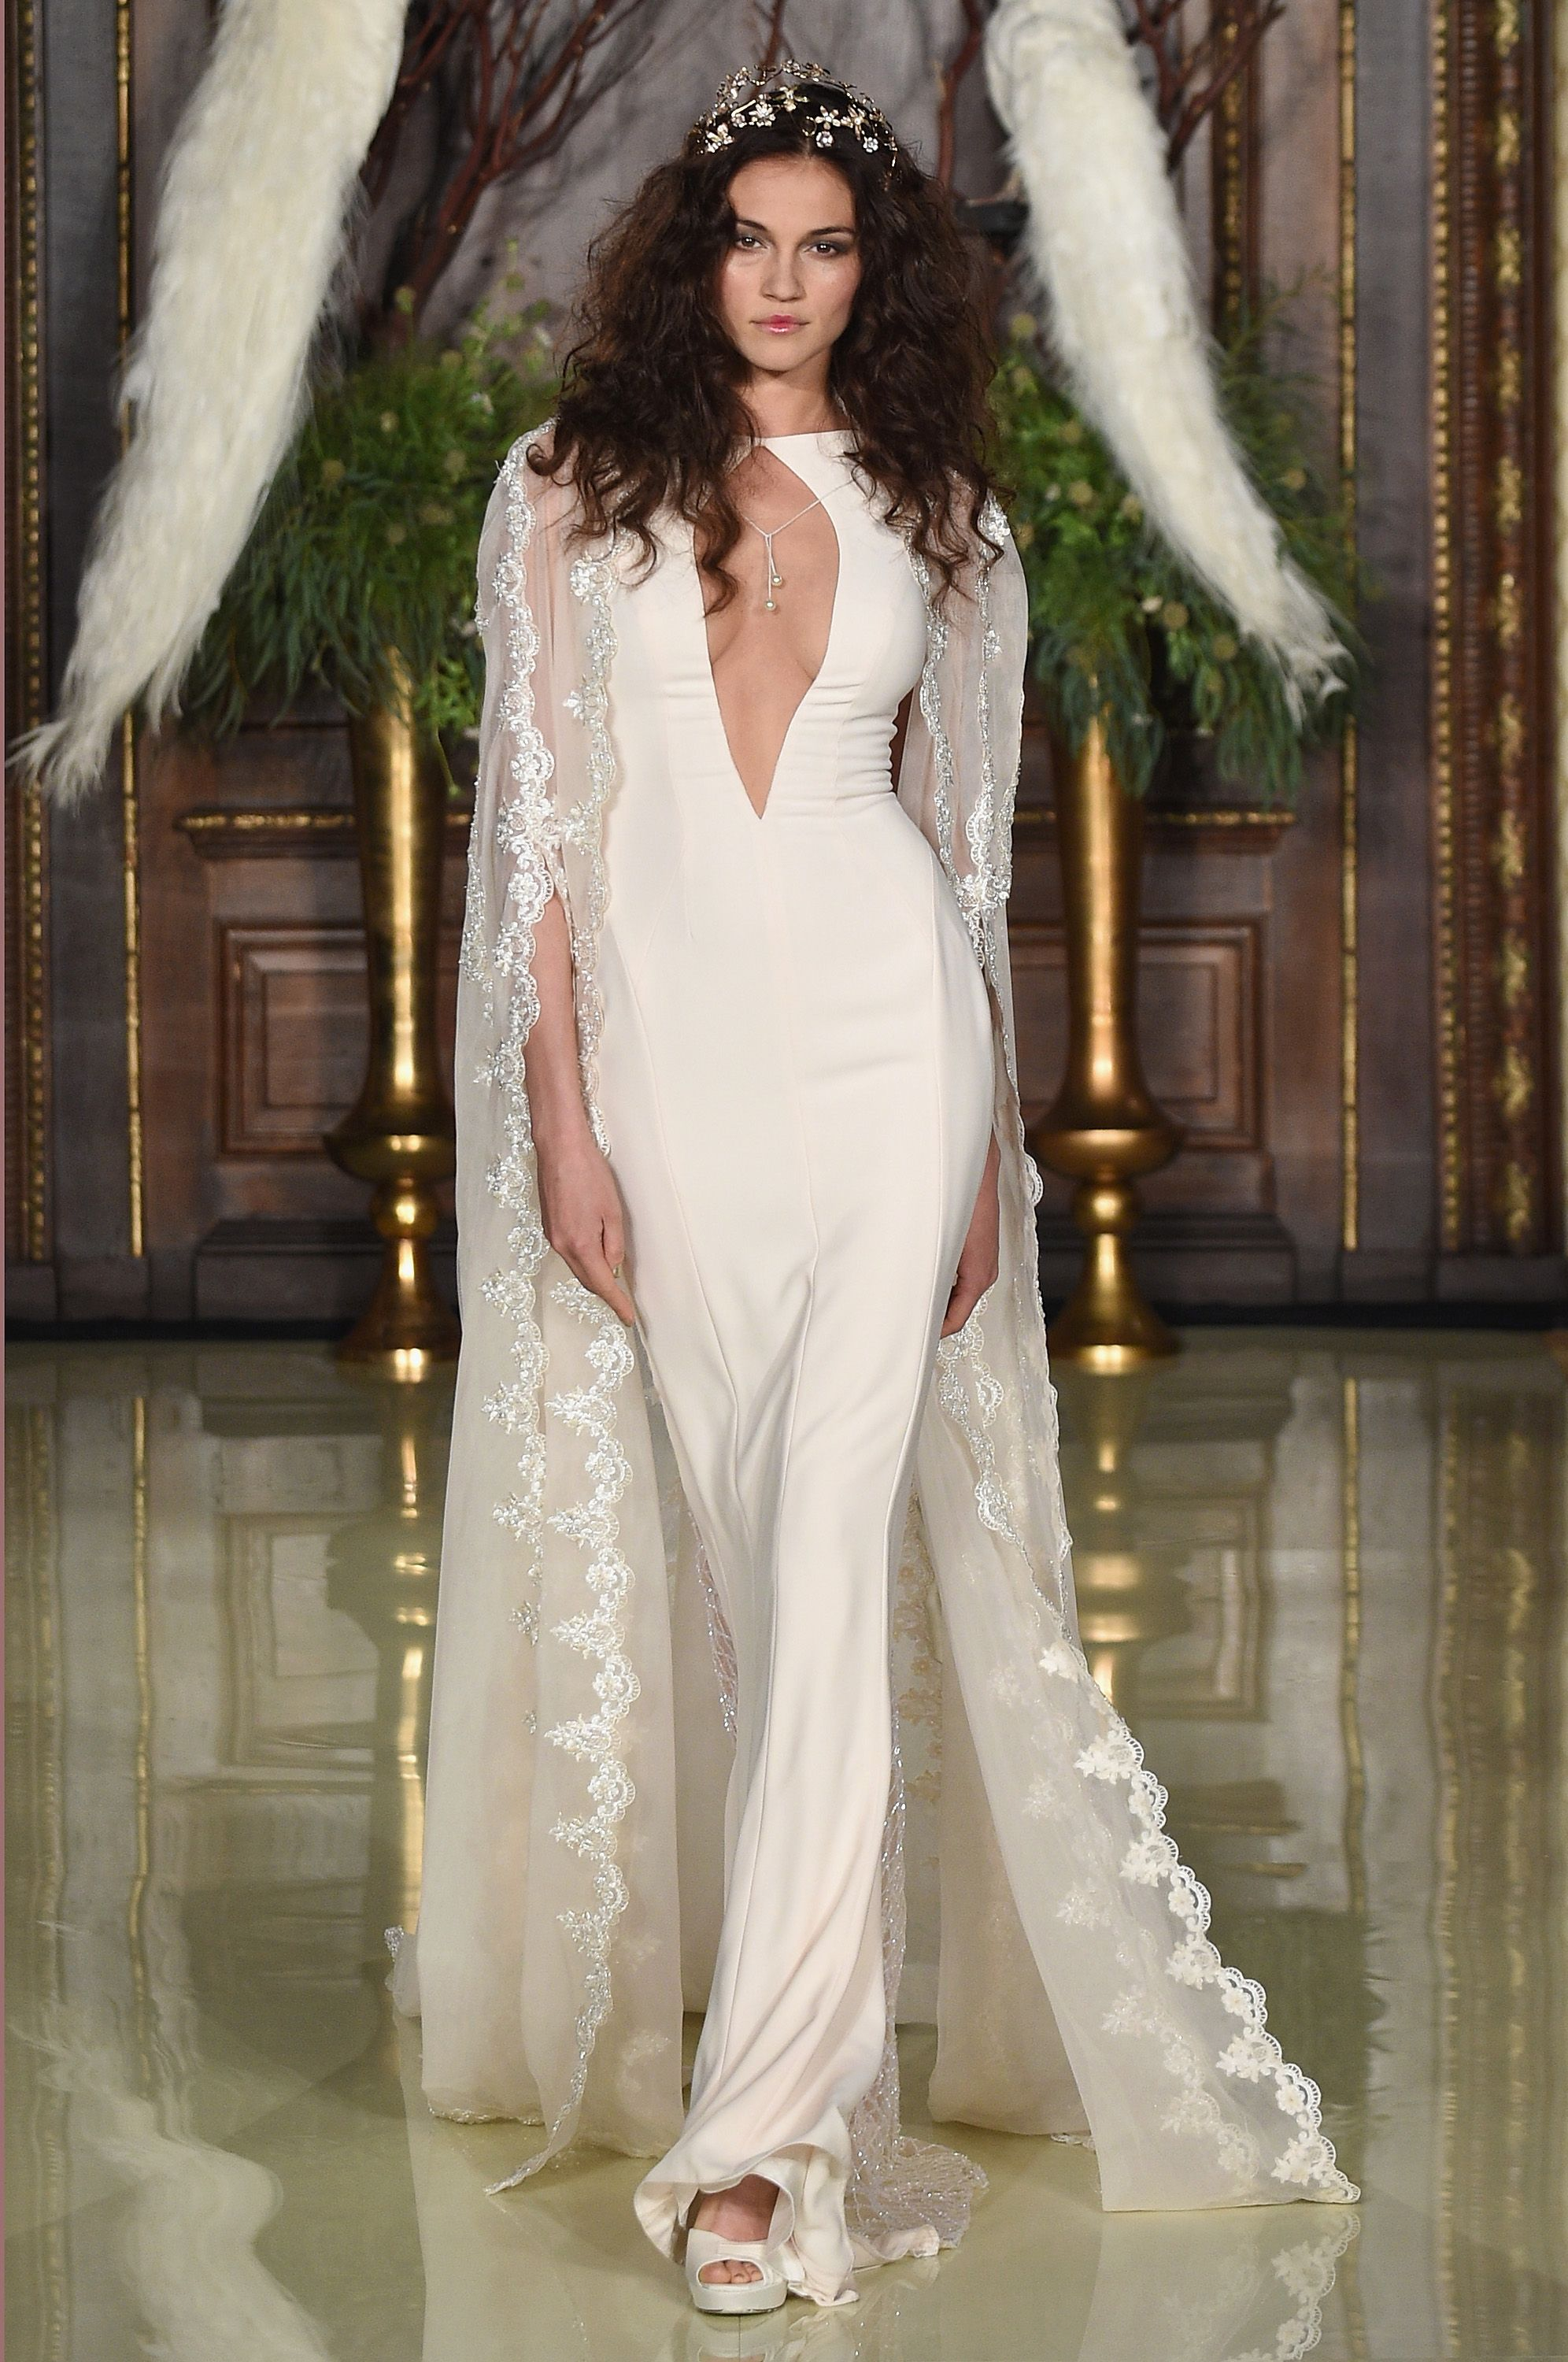 10 Wow Non Traditional Wedding Dresses